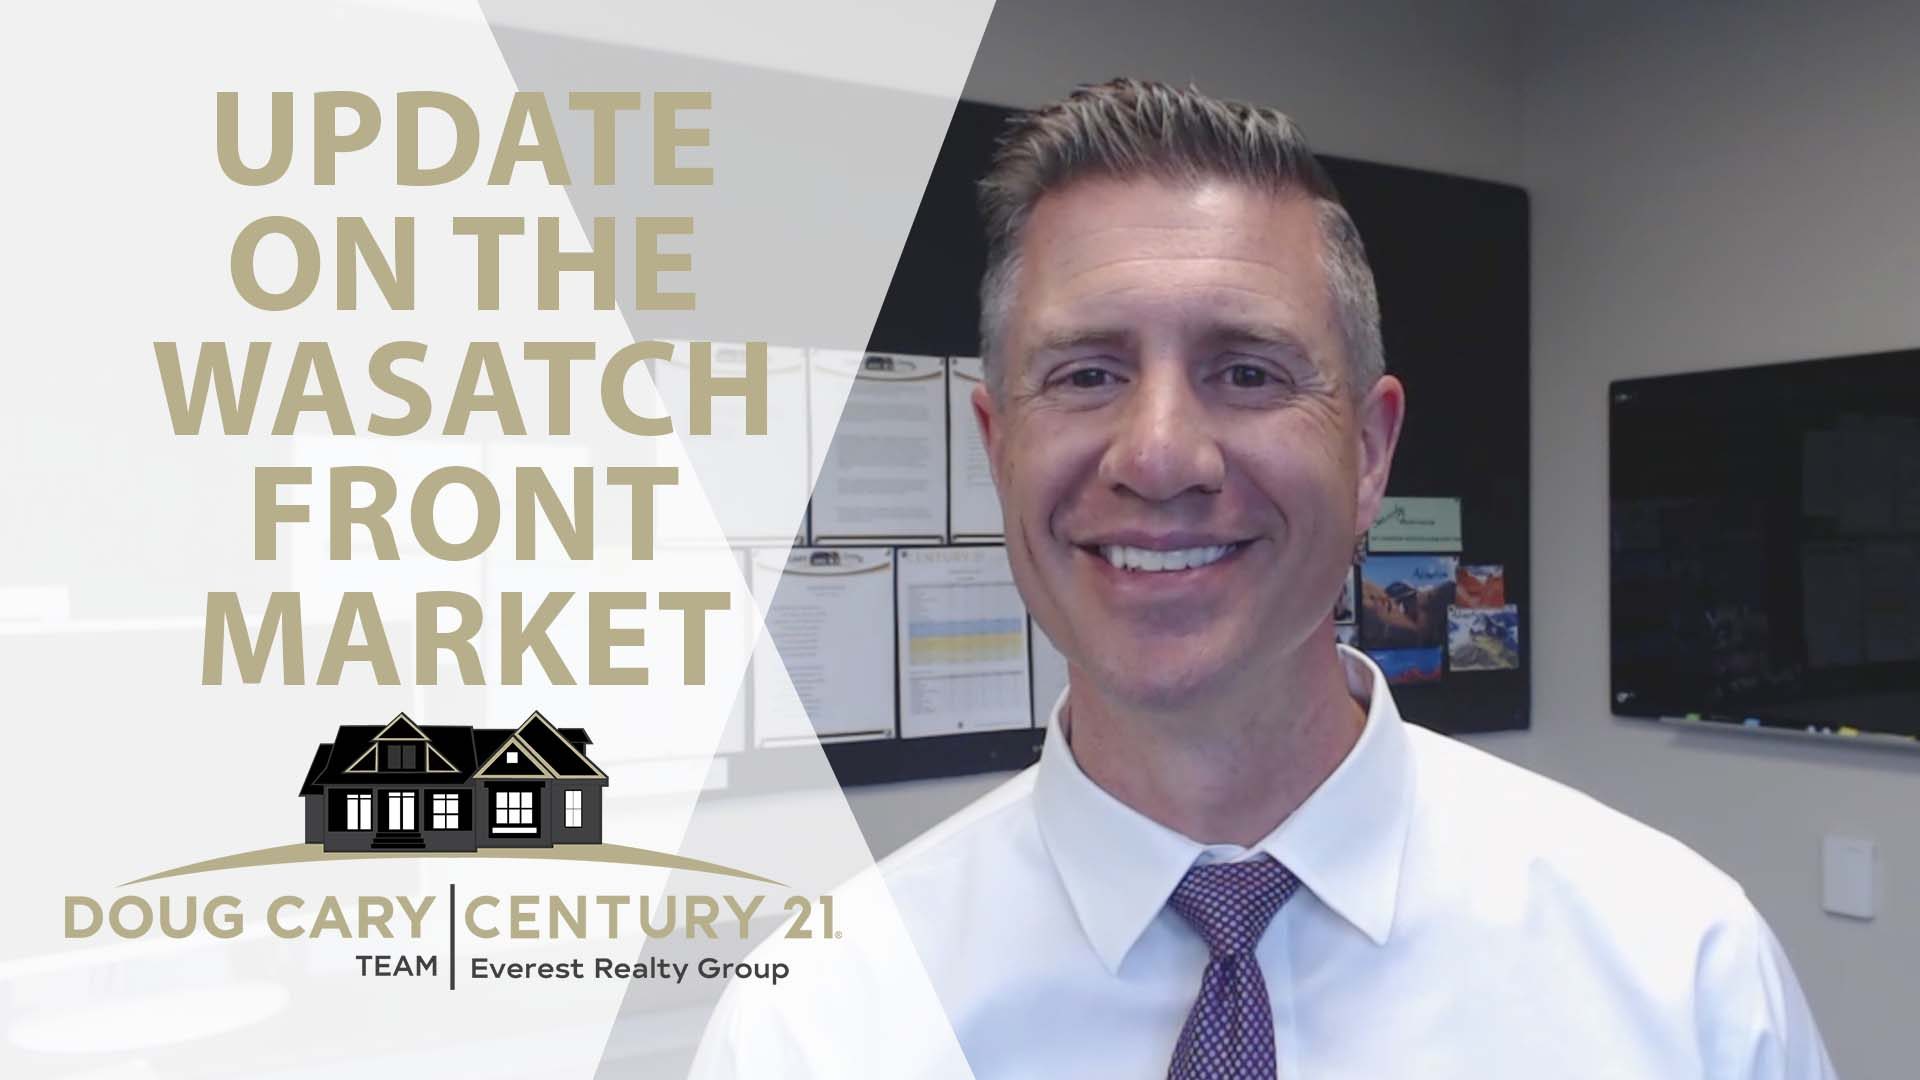 What's Going on in the Wasatch Front Market?